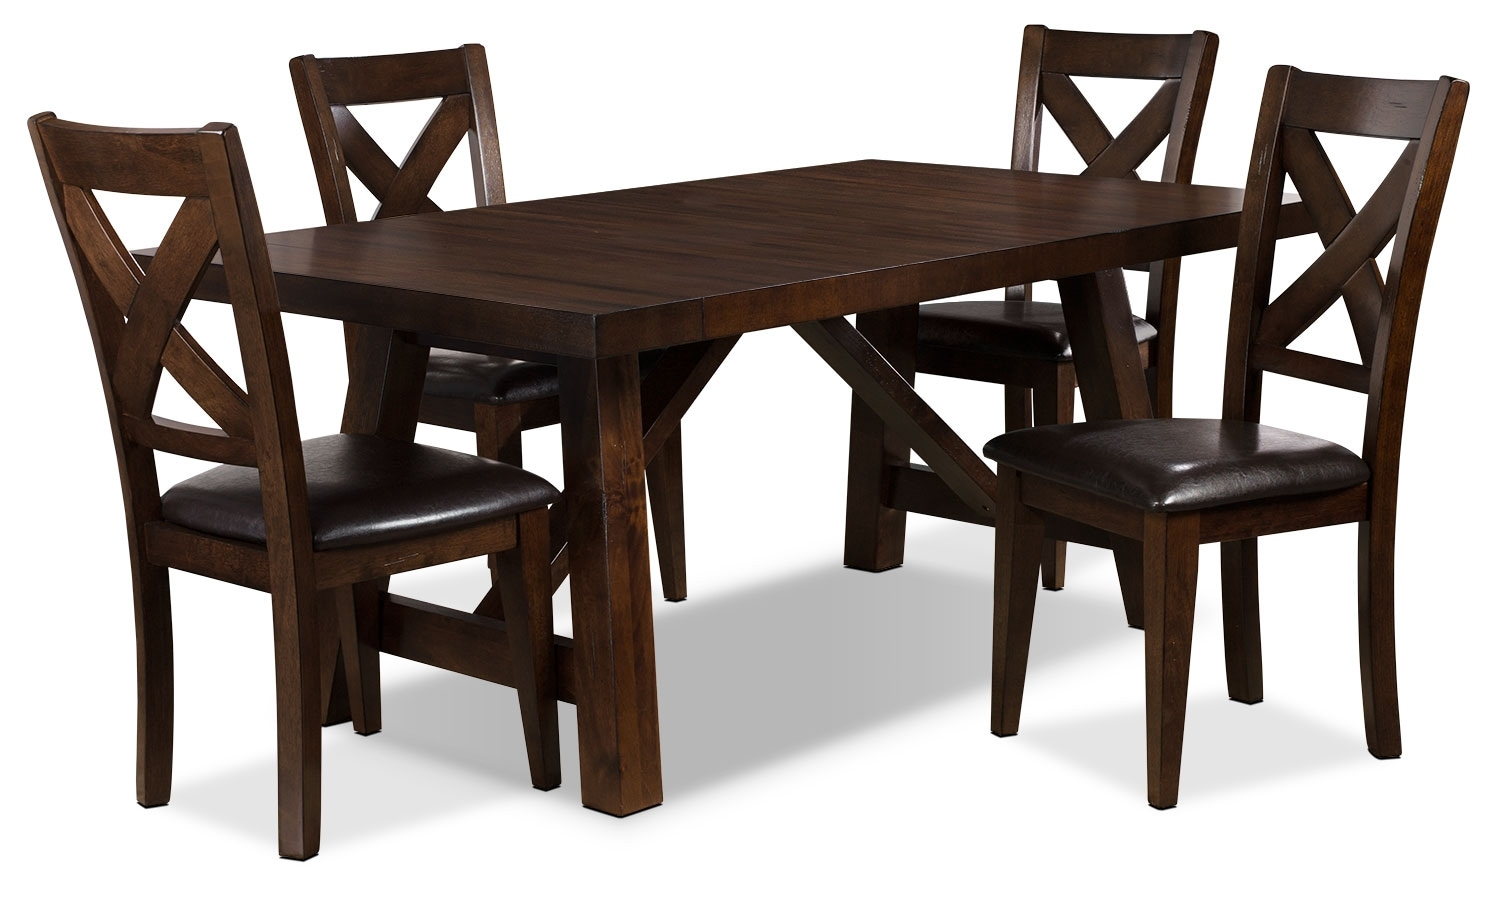 Dining Room Furniture - Adara 5-Piece Dining Package w/ Cross-Back Chairs